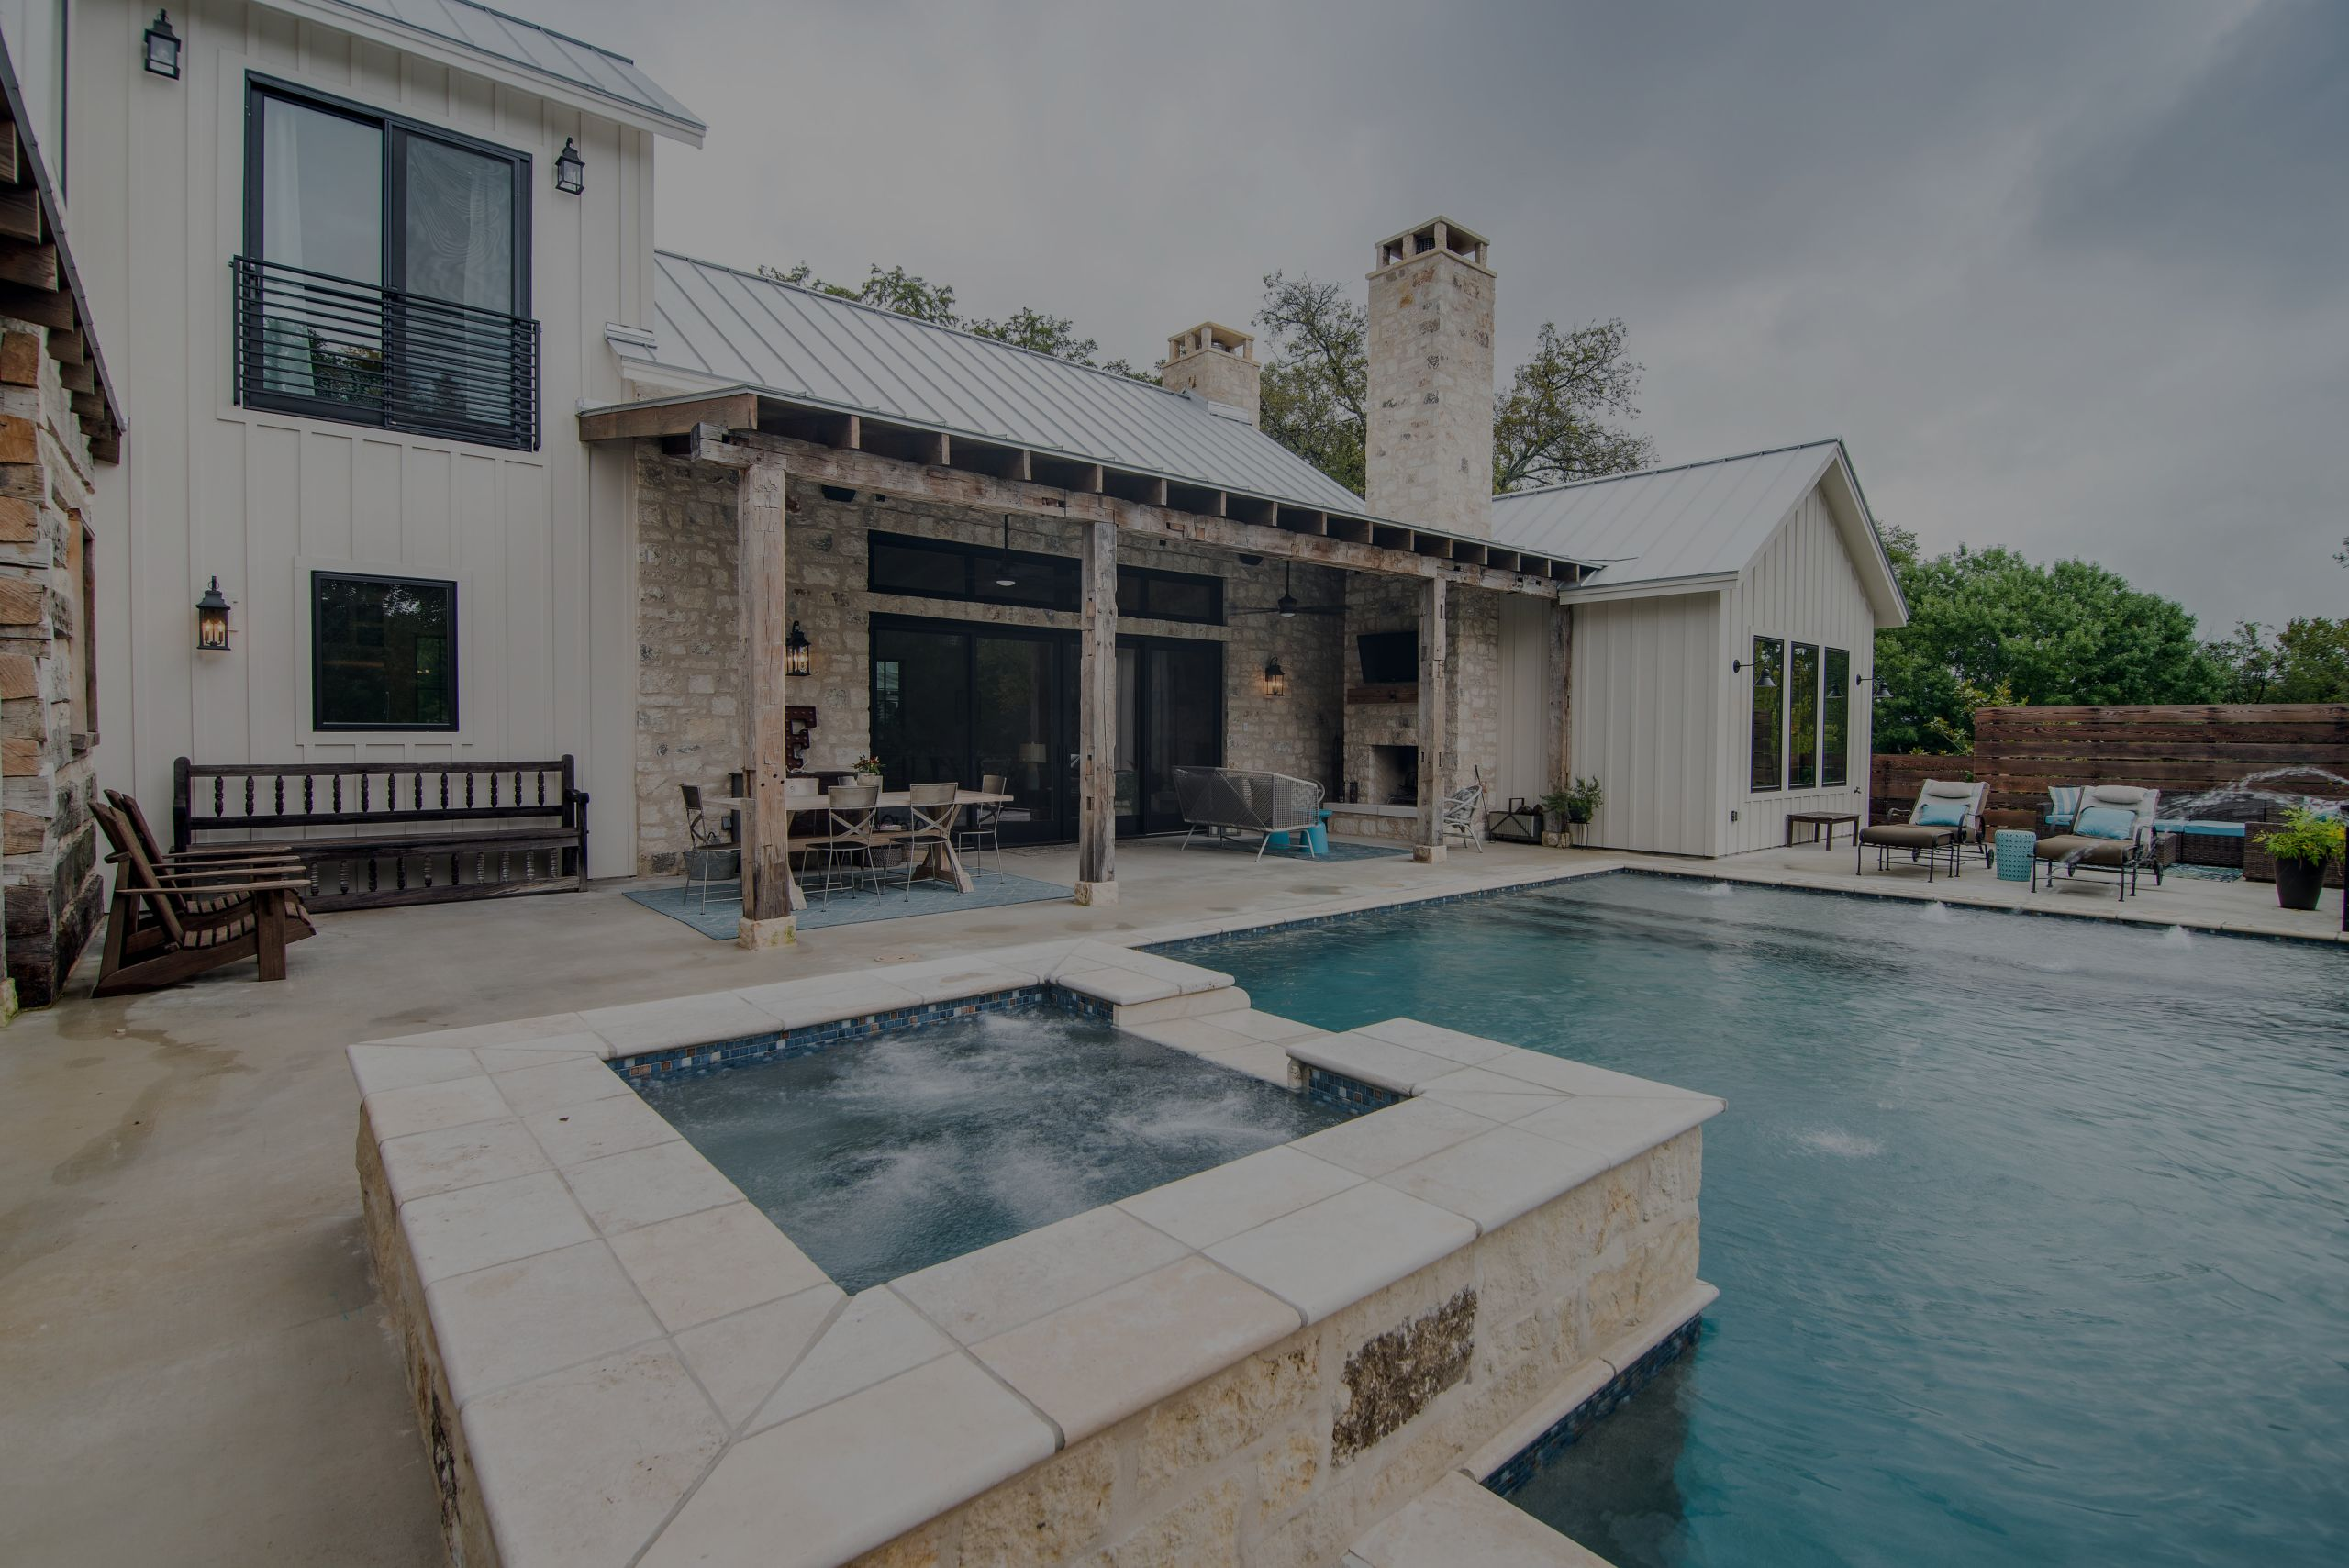 Hill Country Parade of Homes